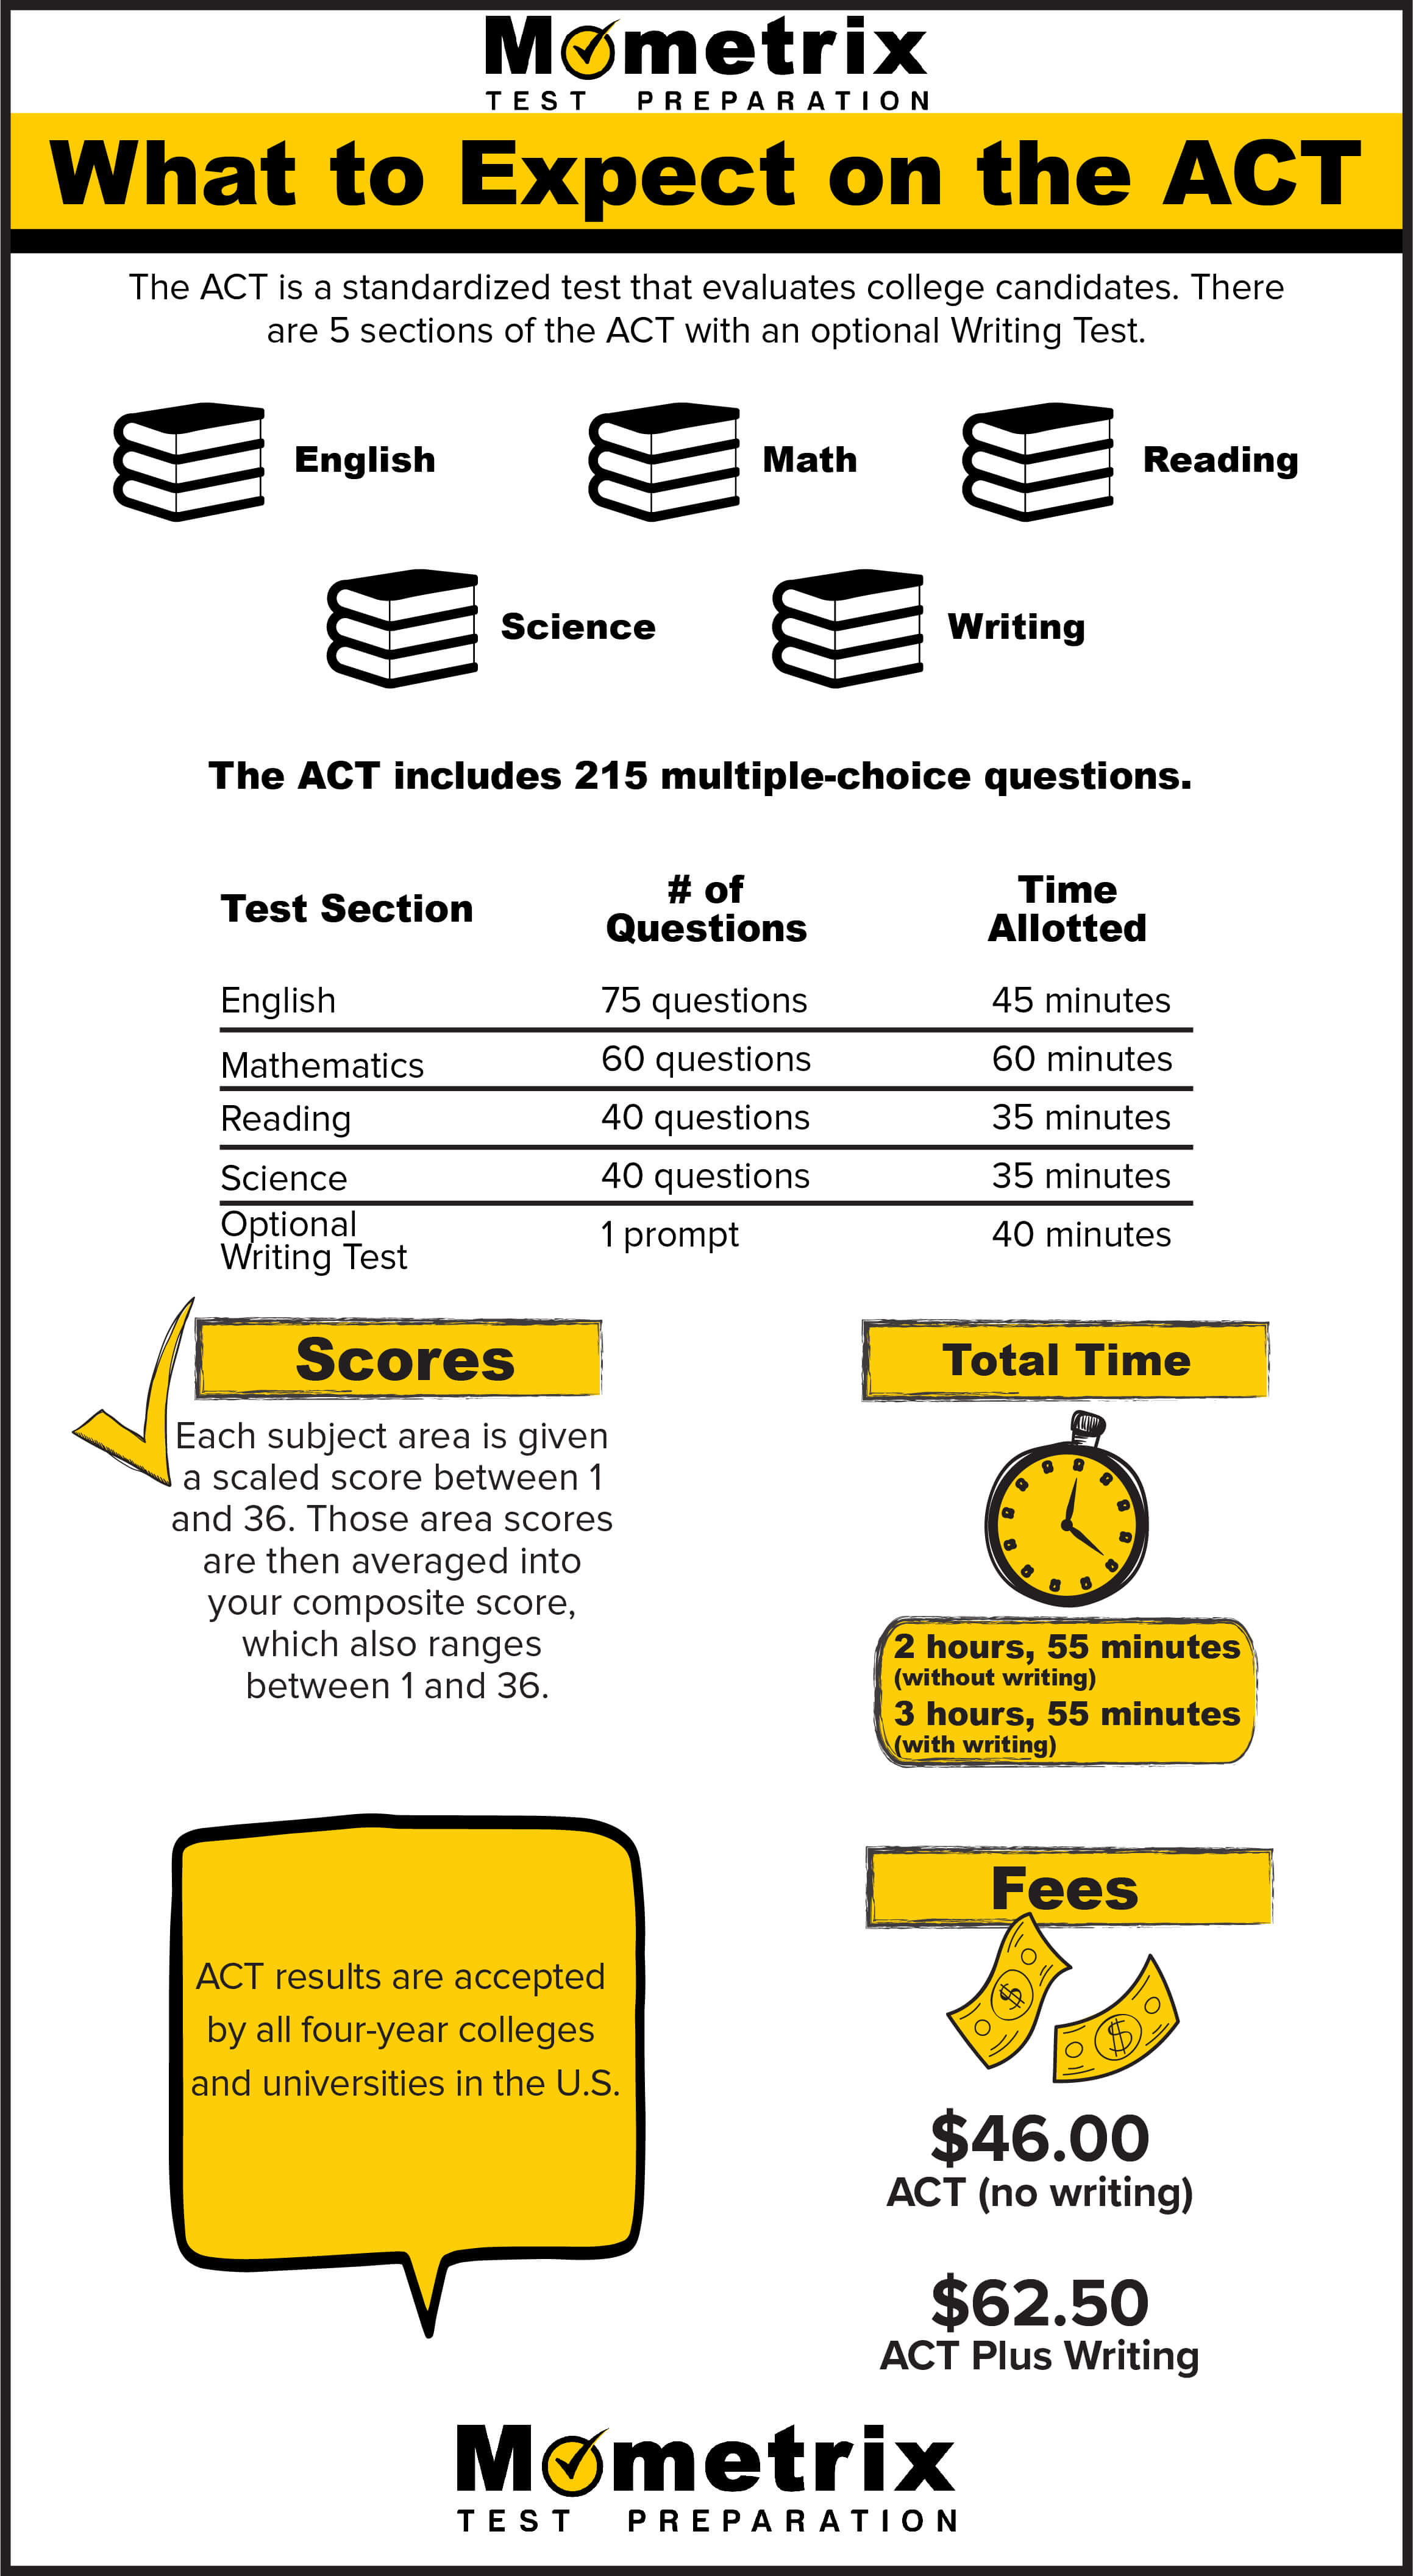 The ACT exam is required for students entering college. The ACT exam consists of four sections: English, Math, Reading, and Science.